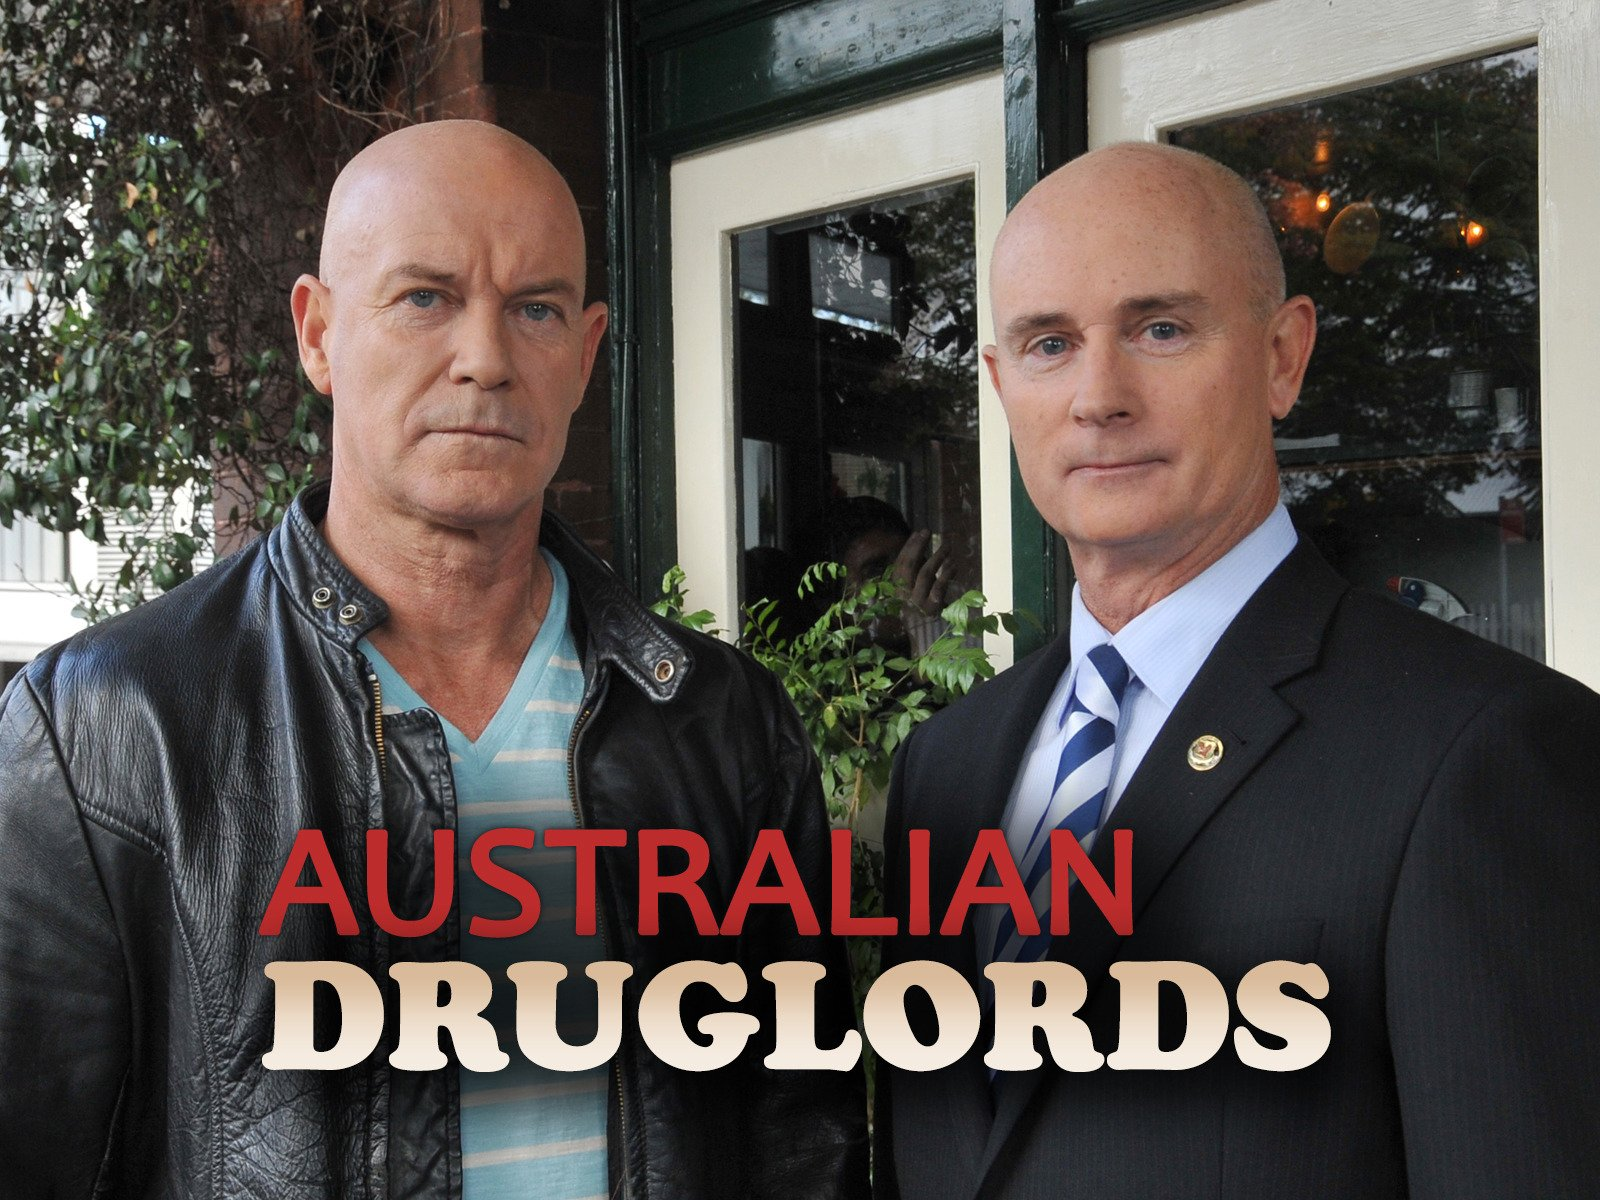 Australian Druglords